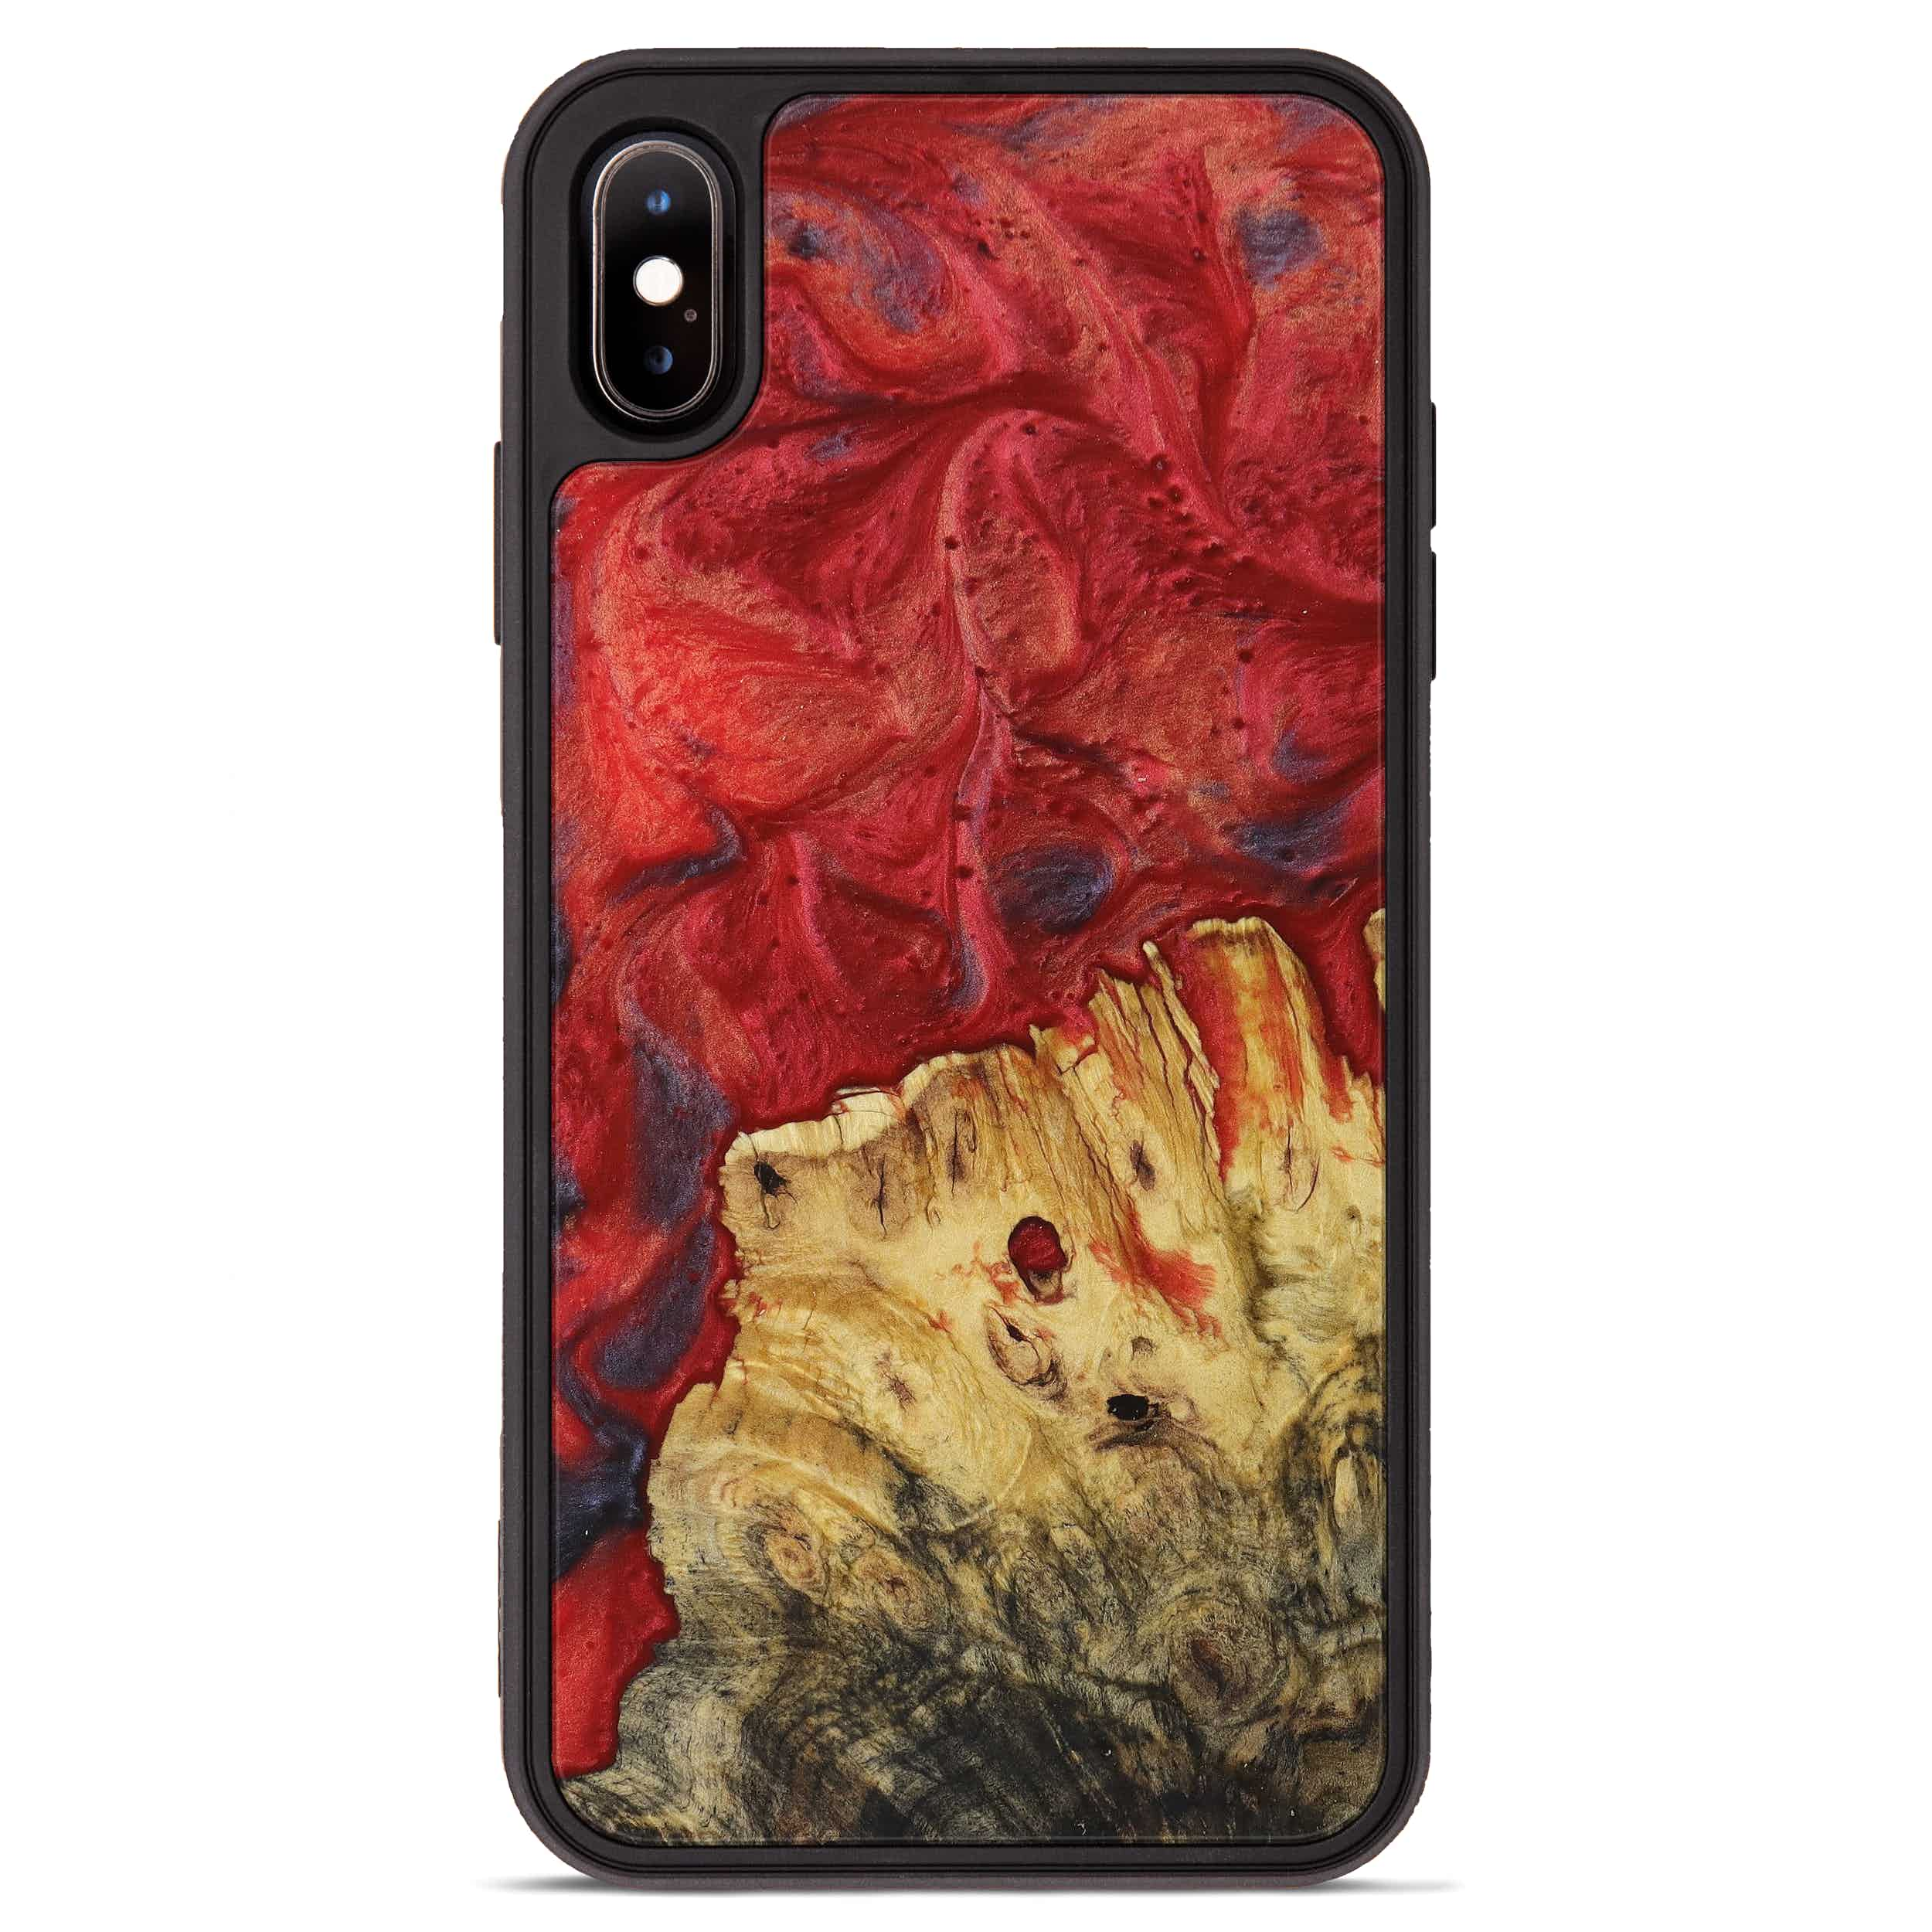 iPhone Xs Max Wood+Resin Phone Case - Cleve (Dark Red, 395199)